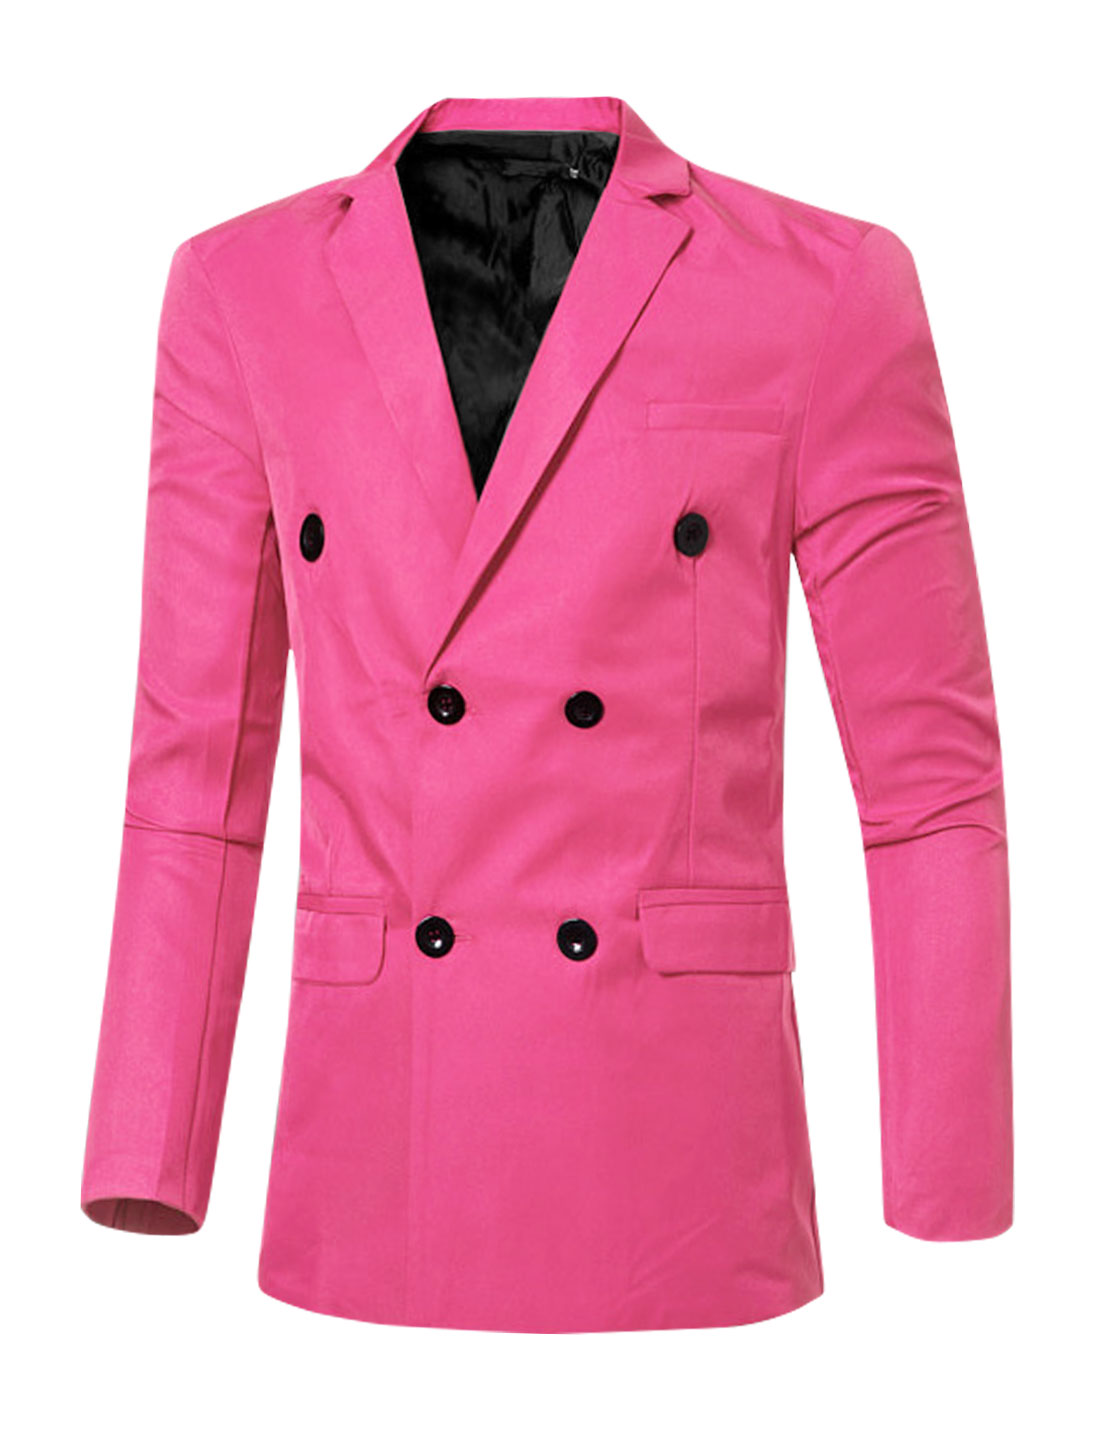 Men Notched Lapel Flap Pockets Double Breasted Blazer Pink M